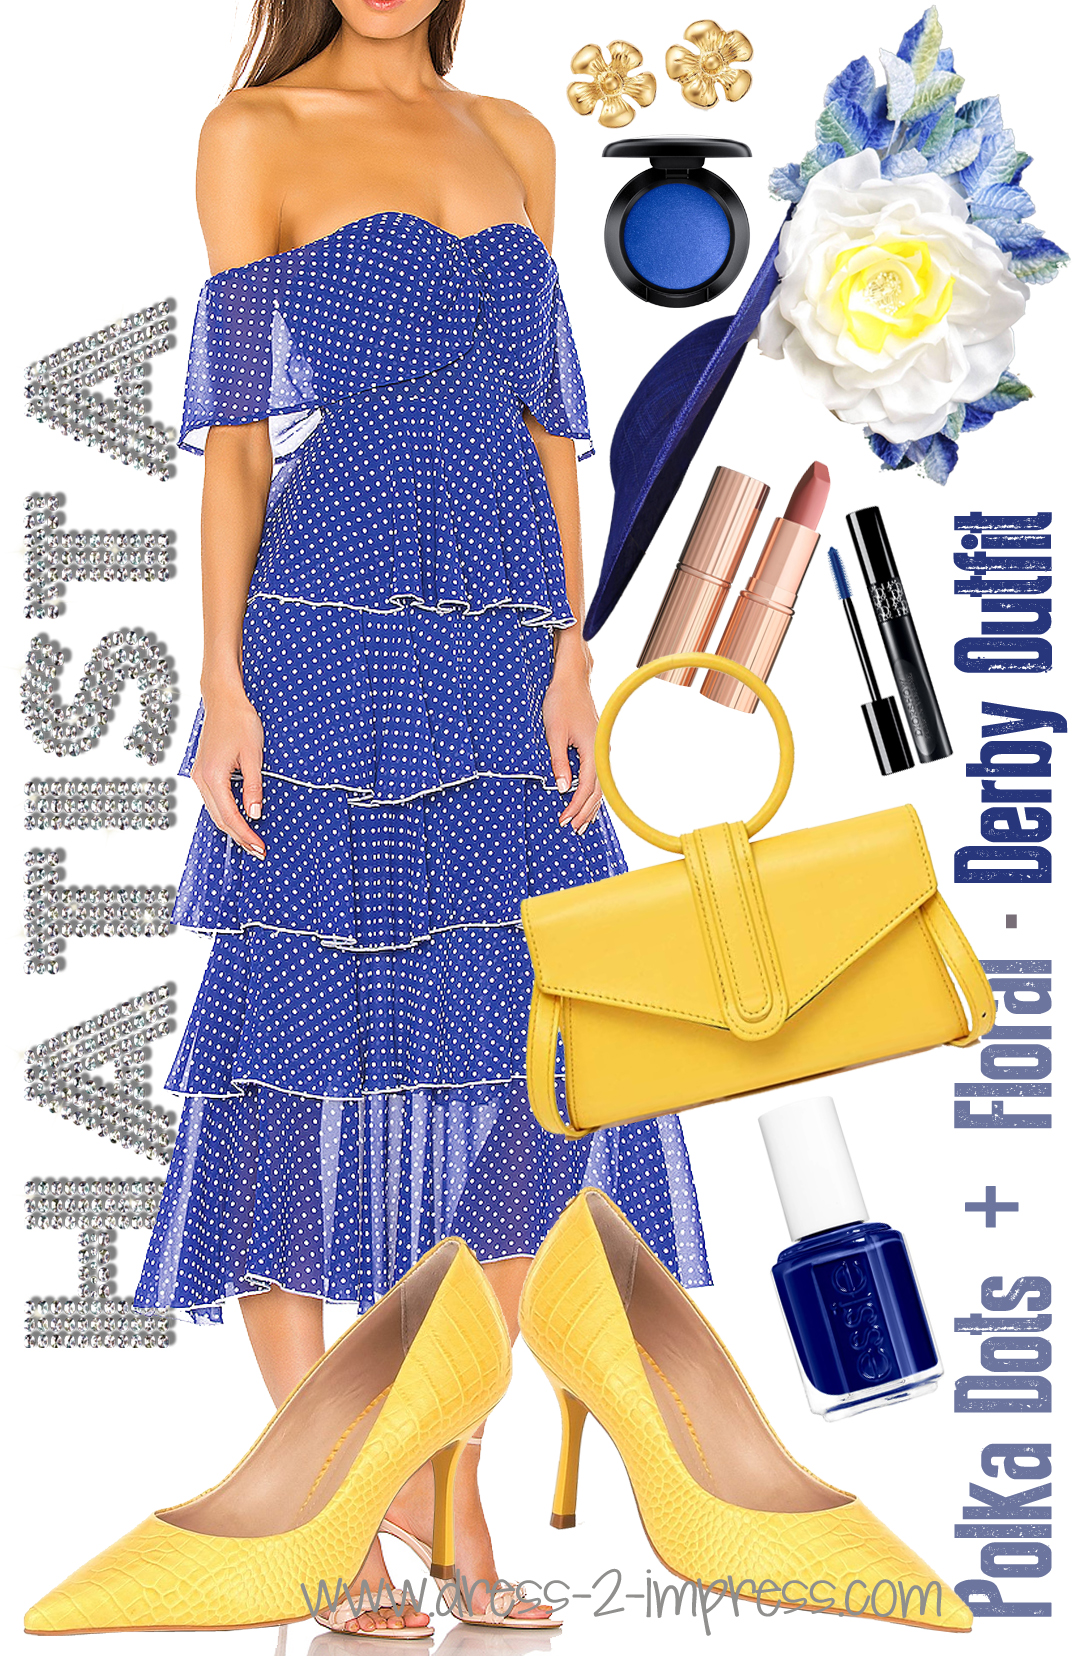 Yellow and Blue Kentucky Derby outfit 2020. How to Wear Yellow 2020. On trend colours for Summer 2020. Outfit ideas with Yellow 2020. What to wear for the Kentucky Derby 2020. Summer Wedding outfit ideas 2020. What to wear for a day at the Races 2020.